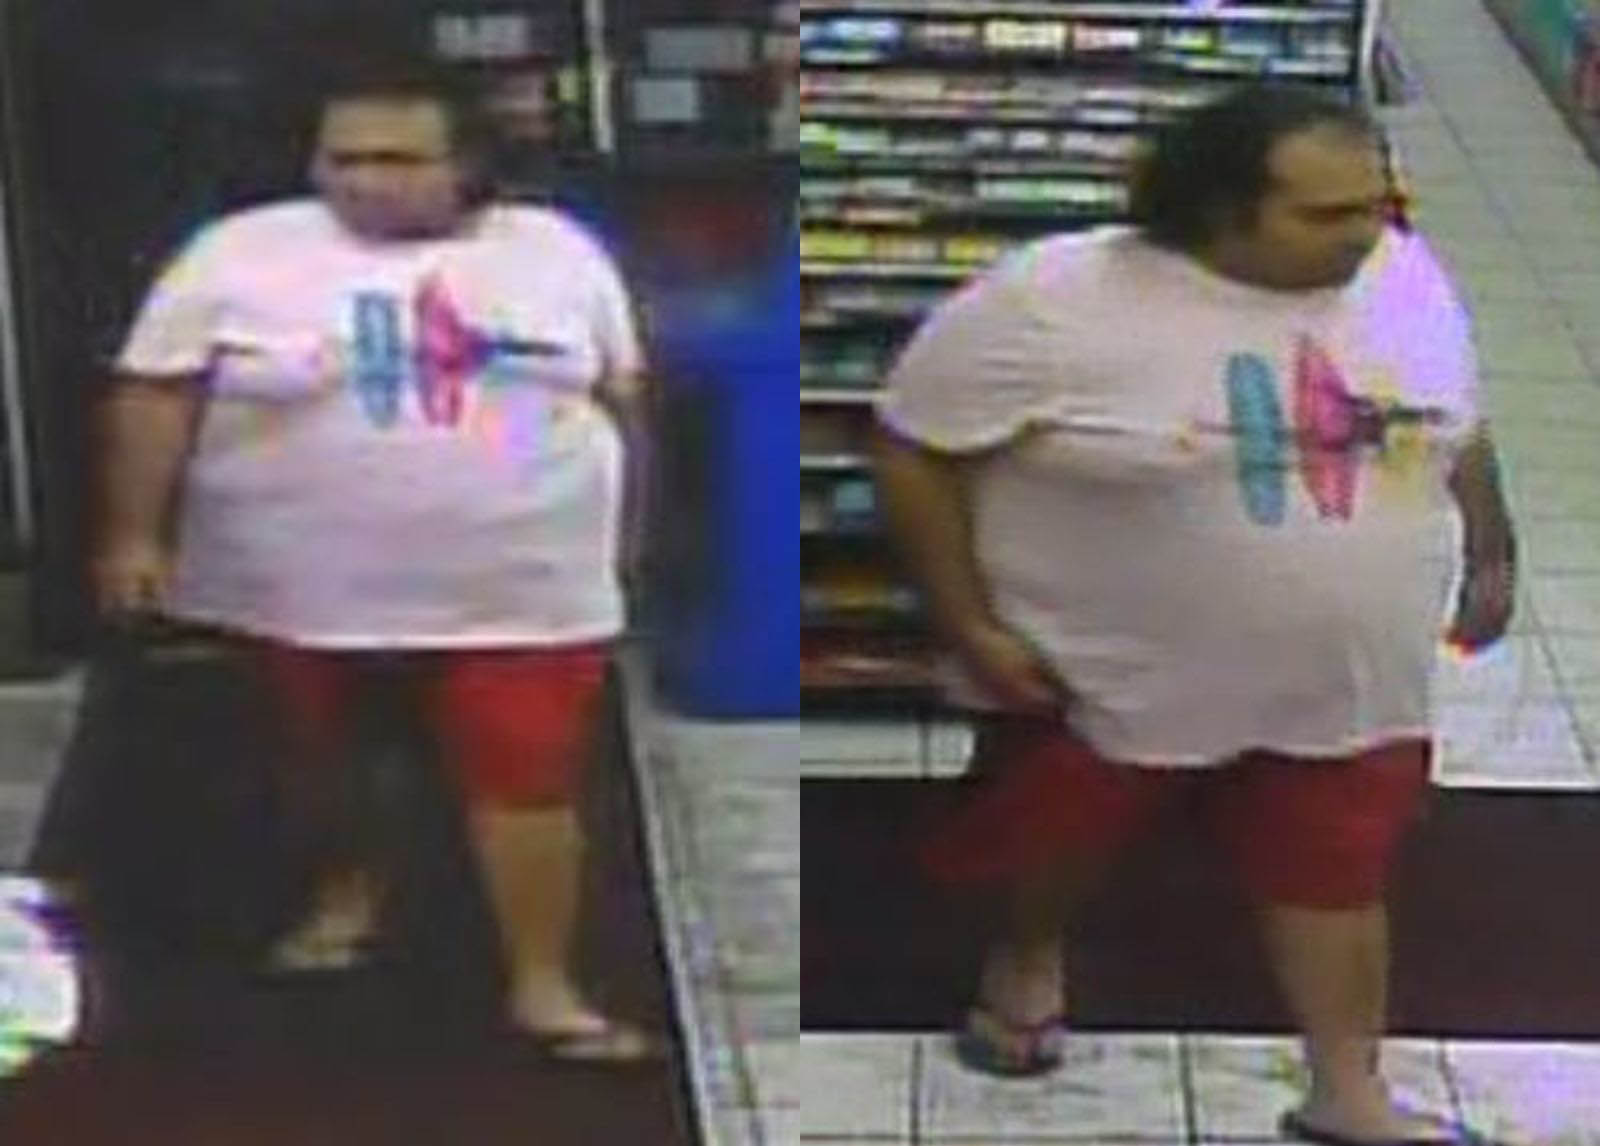 Toronto police are looking for this man after a woman says she was sexually assaulted near Dundas and Sherbourne on July 22, 2017. TORONTO POLICE